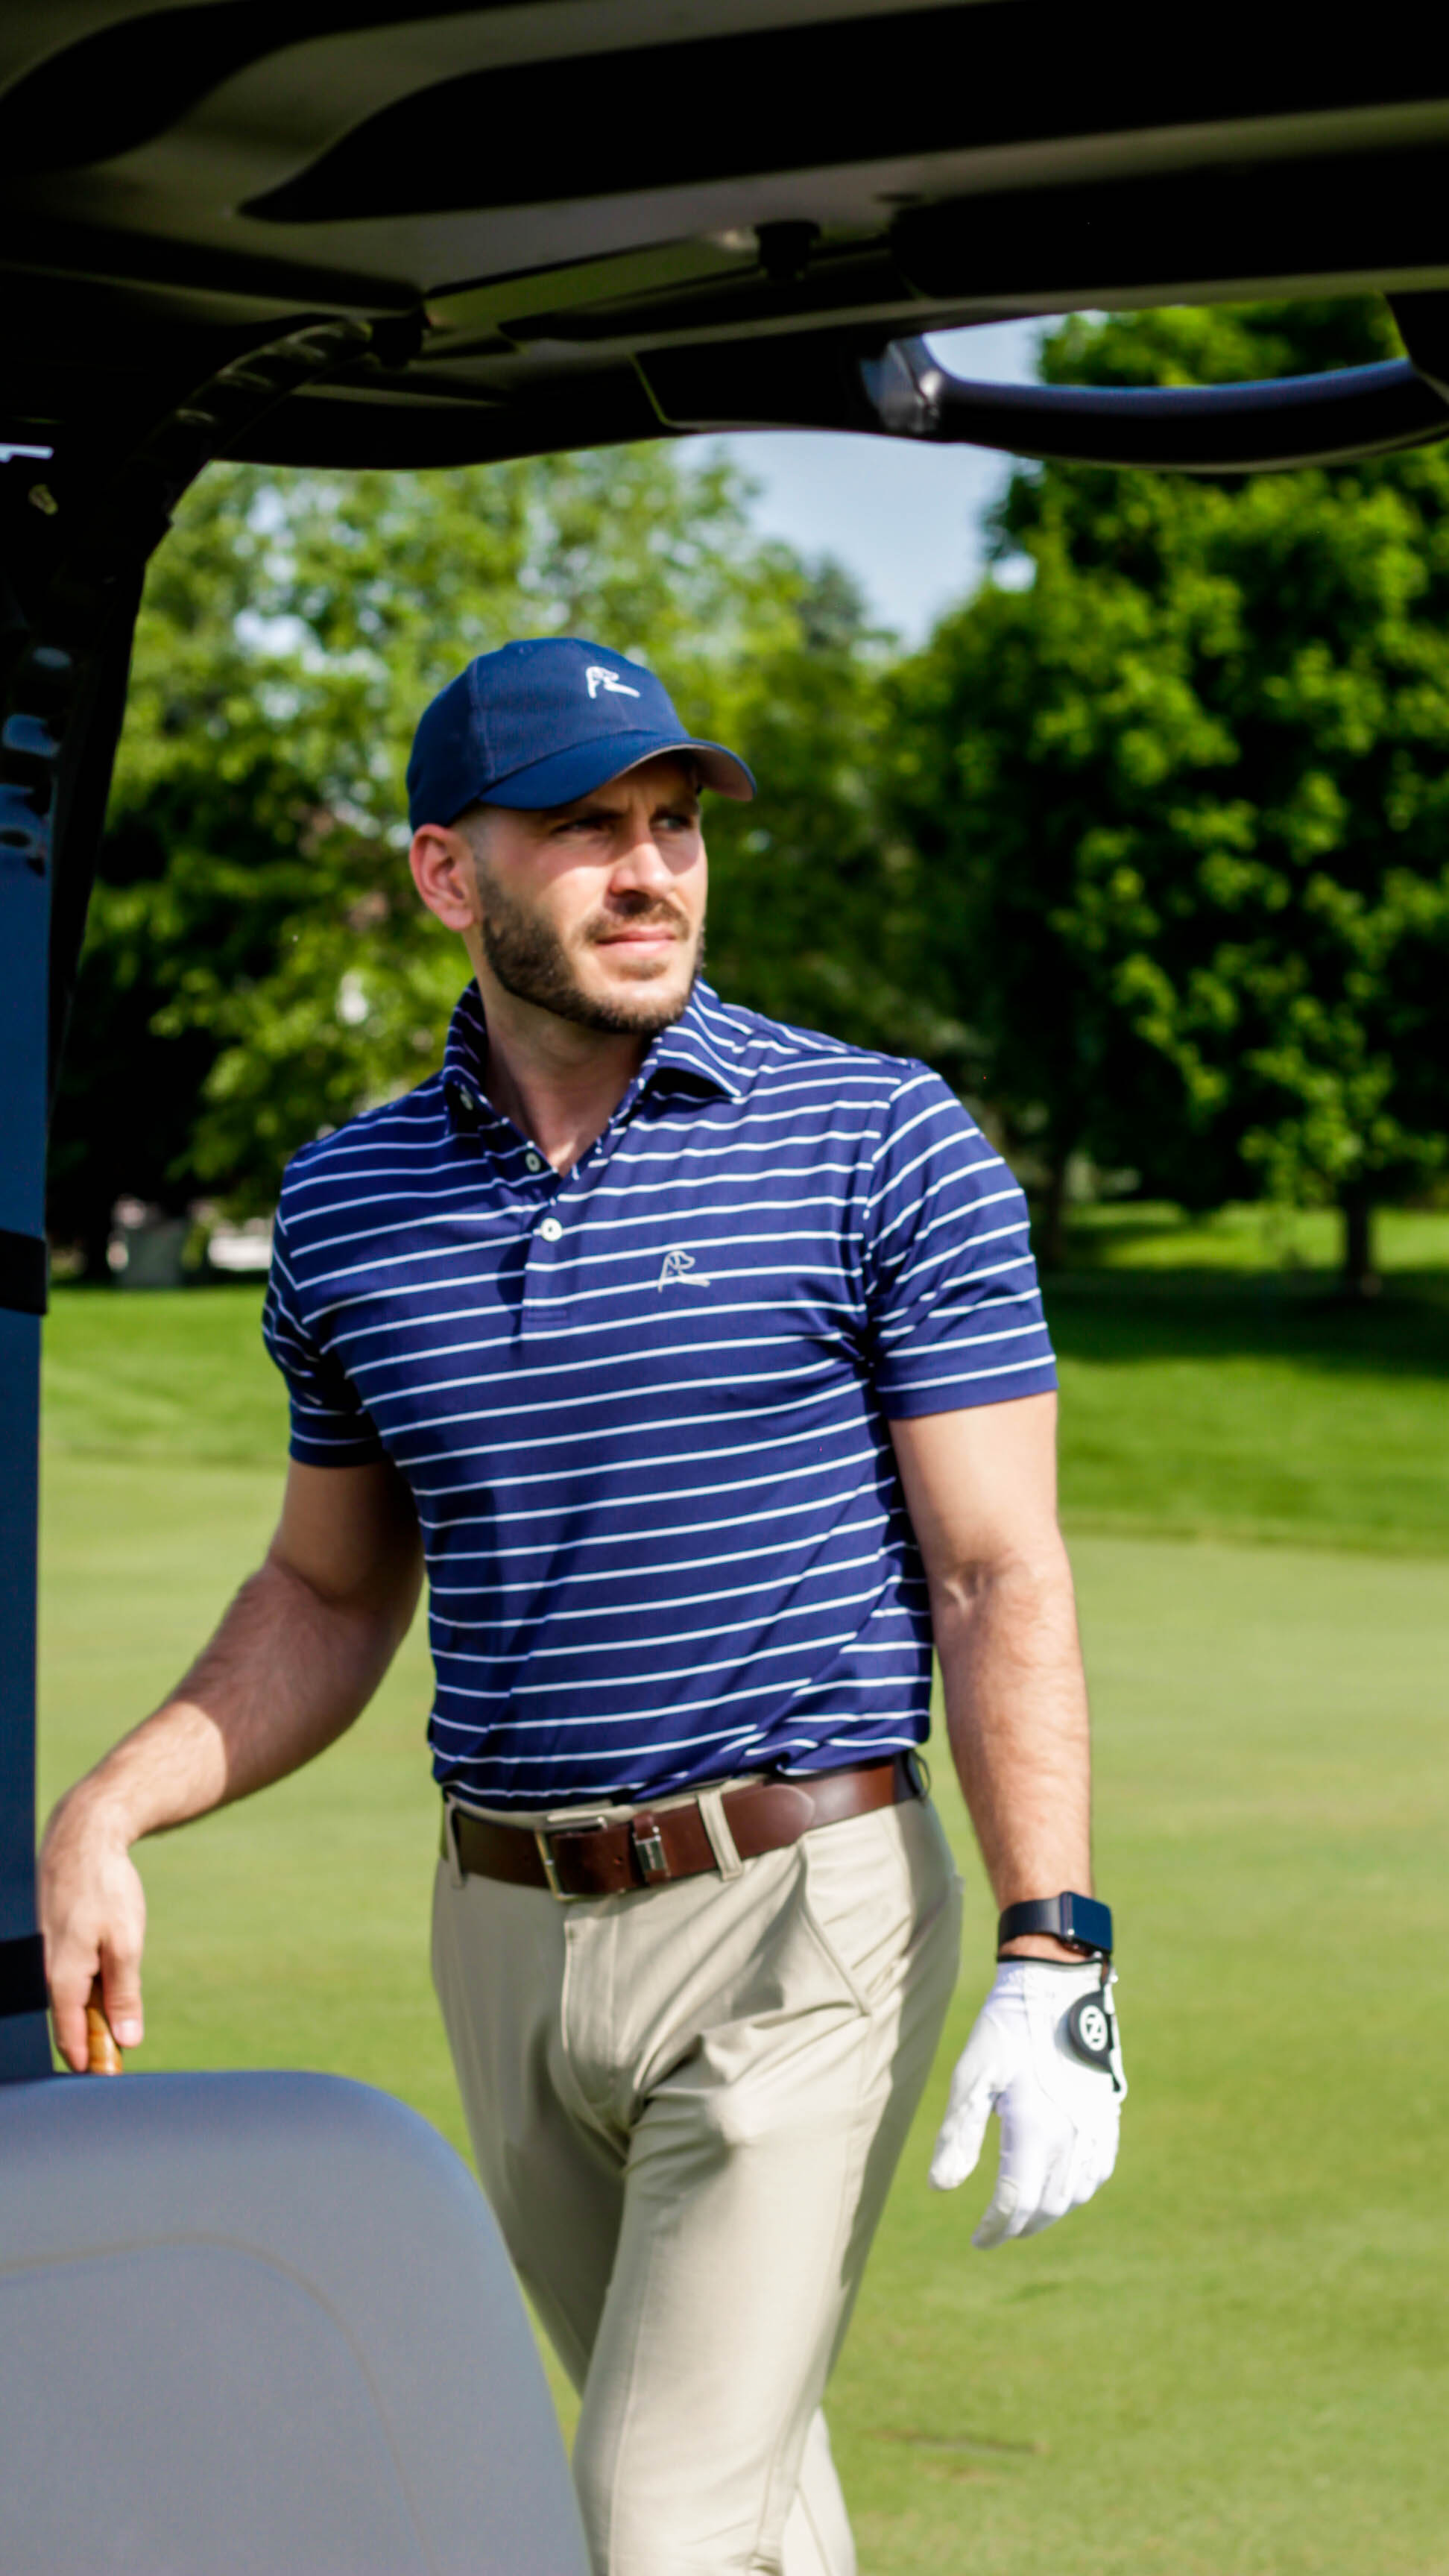 Wearing: The Navy Yard Polo, The Poly Hat